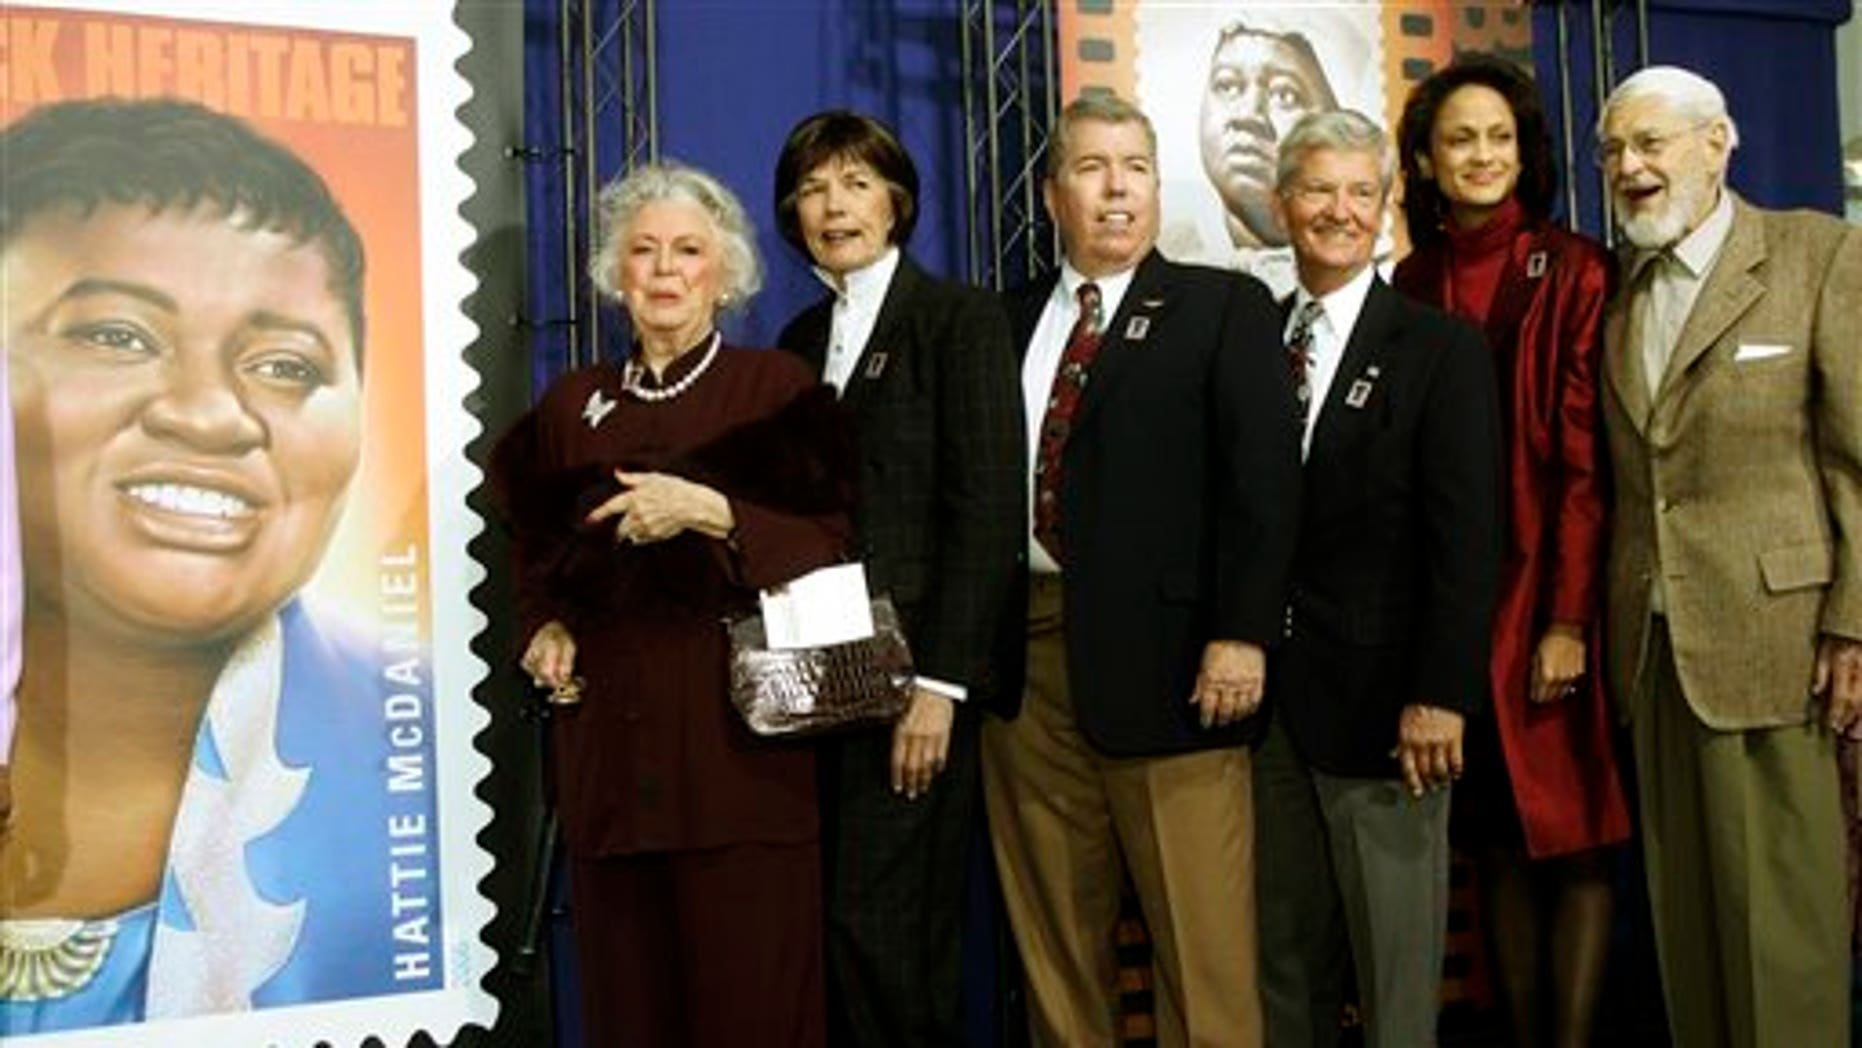 In this Jan. 25, 2006 photo, Ann-Marie Johnson, National First Vice President of the Screen Actors Guild second from right, joins Gone With the Wind cast, from left: Ann Rutherford, Cammie King Conlon, Mickey Kuhn, Patrick Curtis and Fred Crane to celebrate actress Hattie McDaniel's stamp. (AP)